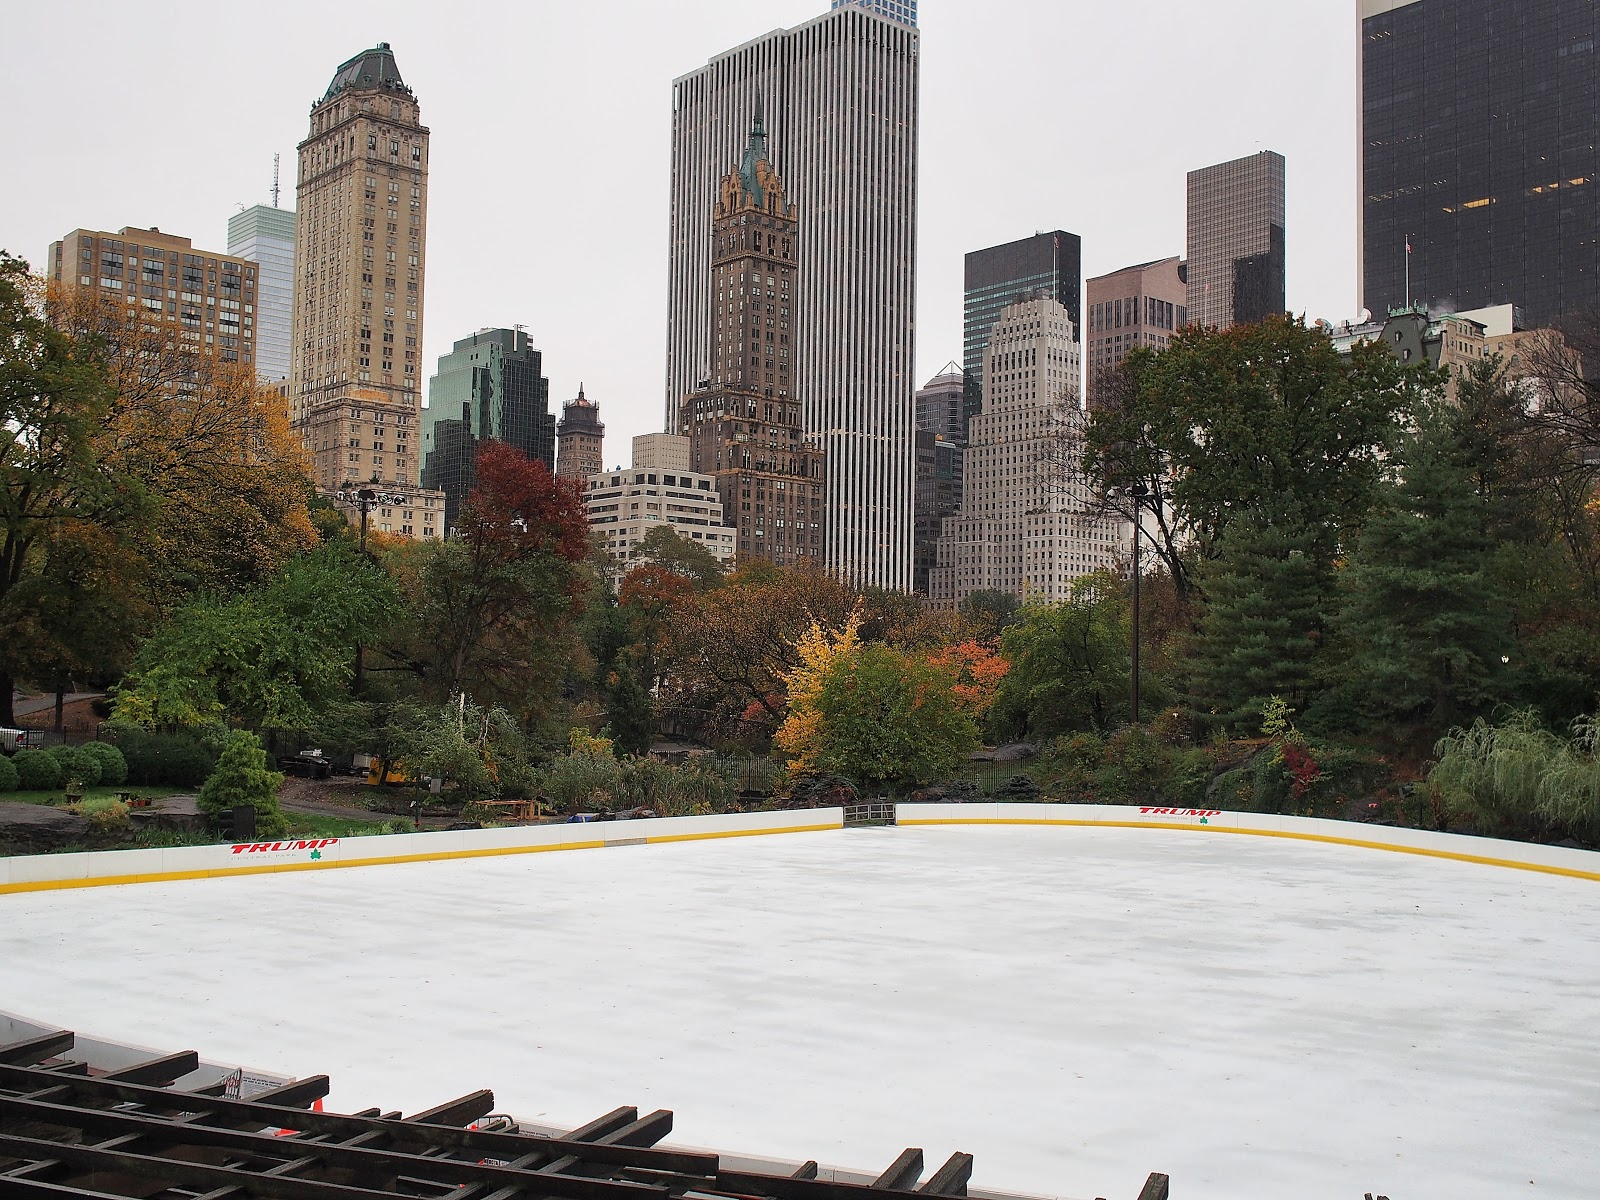 Wollman Rink on a Rainy Day, #wollmanrink #iceskating #centralpark #nyc 2014